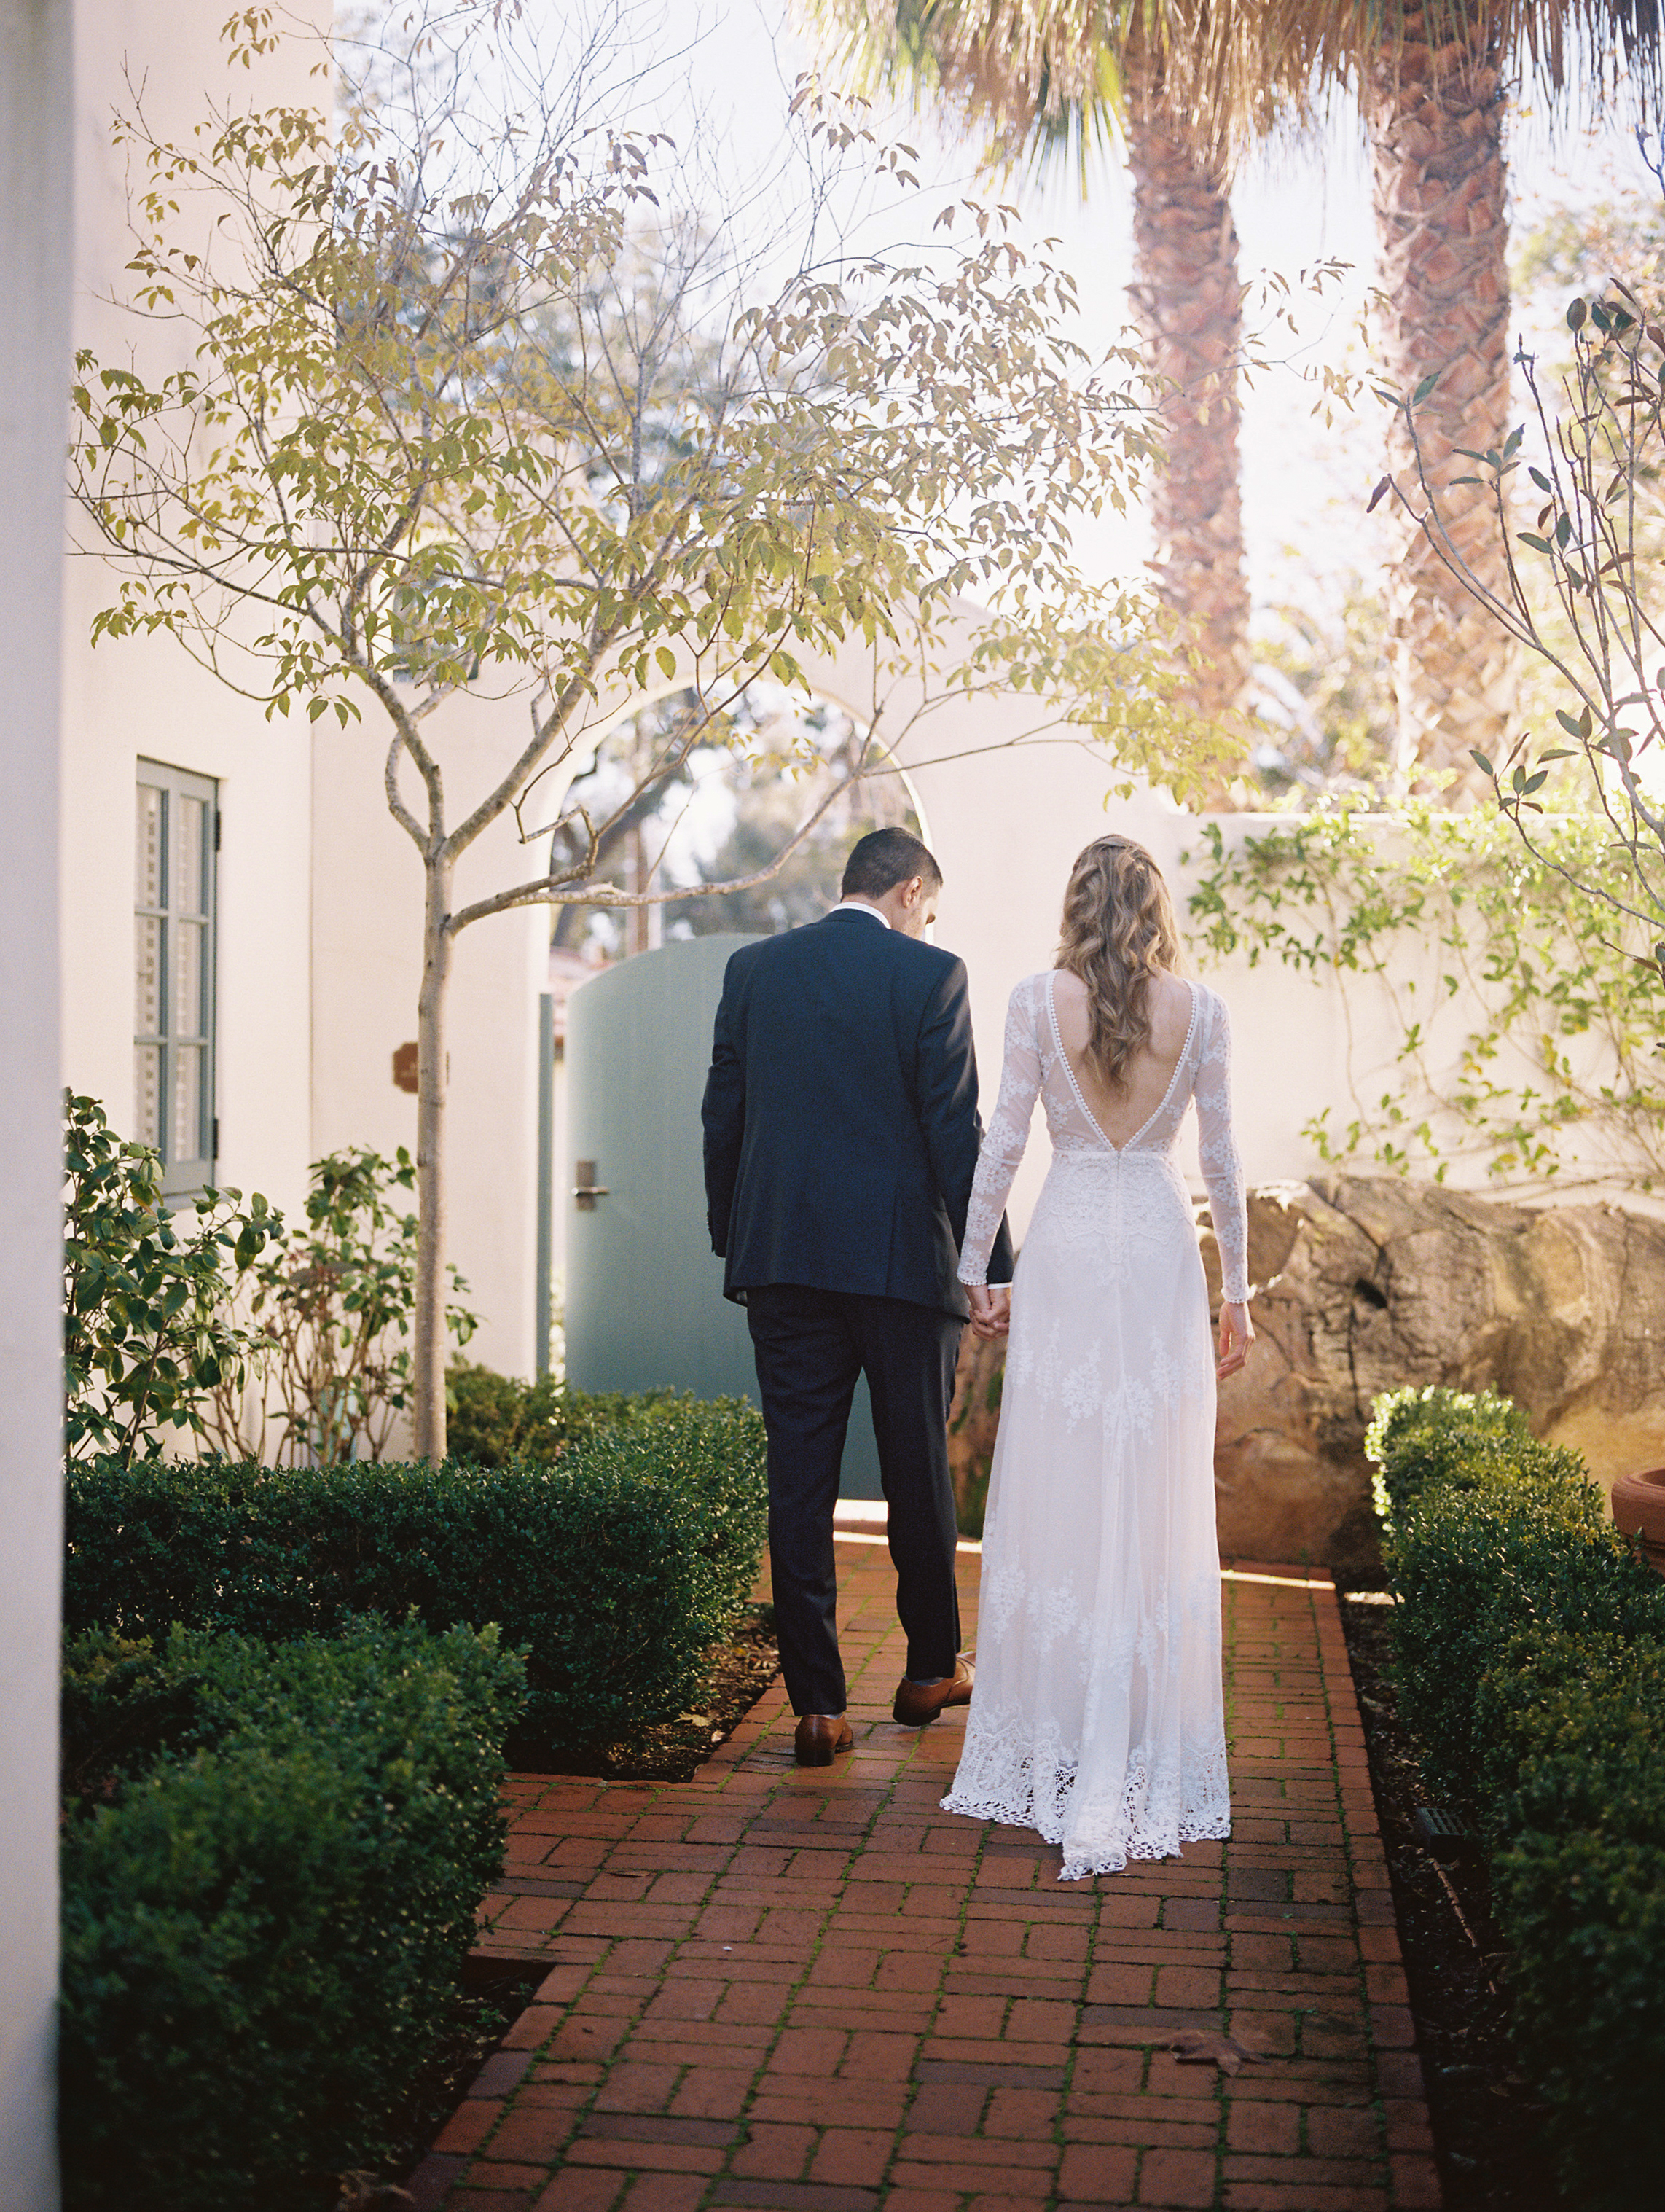 www.santabarbarawedding.com | Ryanne Bee Photography | Santa Barbara Courthouse | Belmond El Encanto | Dreamers and Lovers | Bride and Groom Before the Ceremony